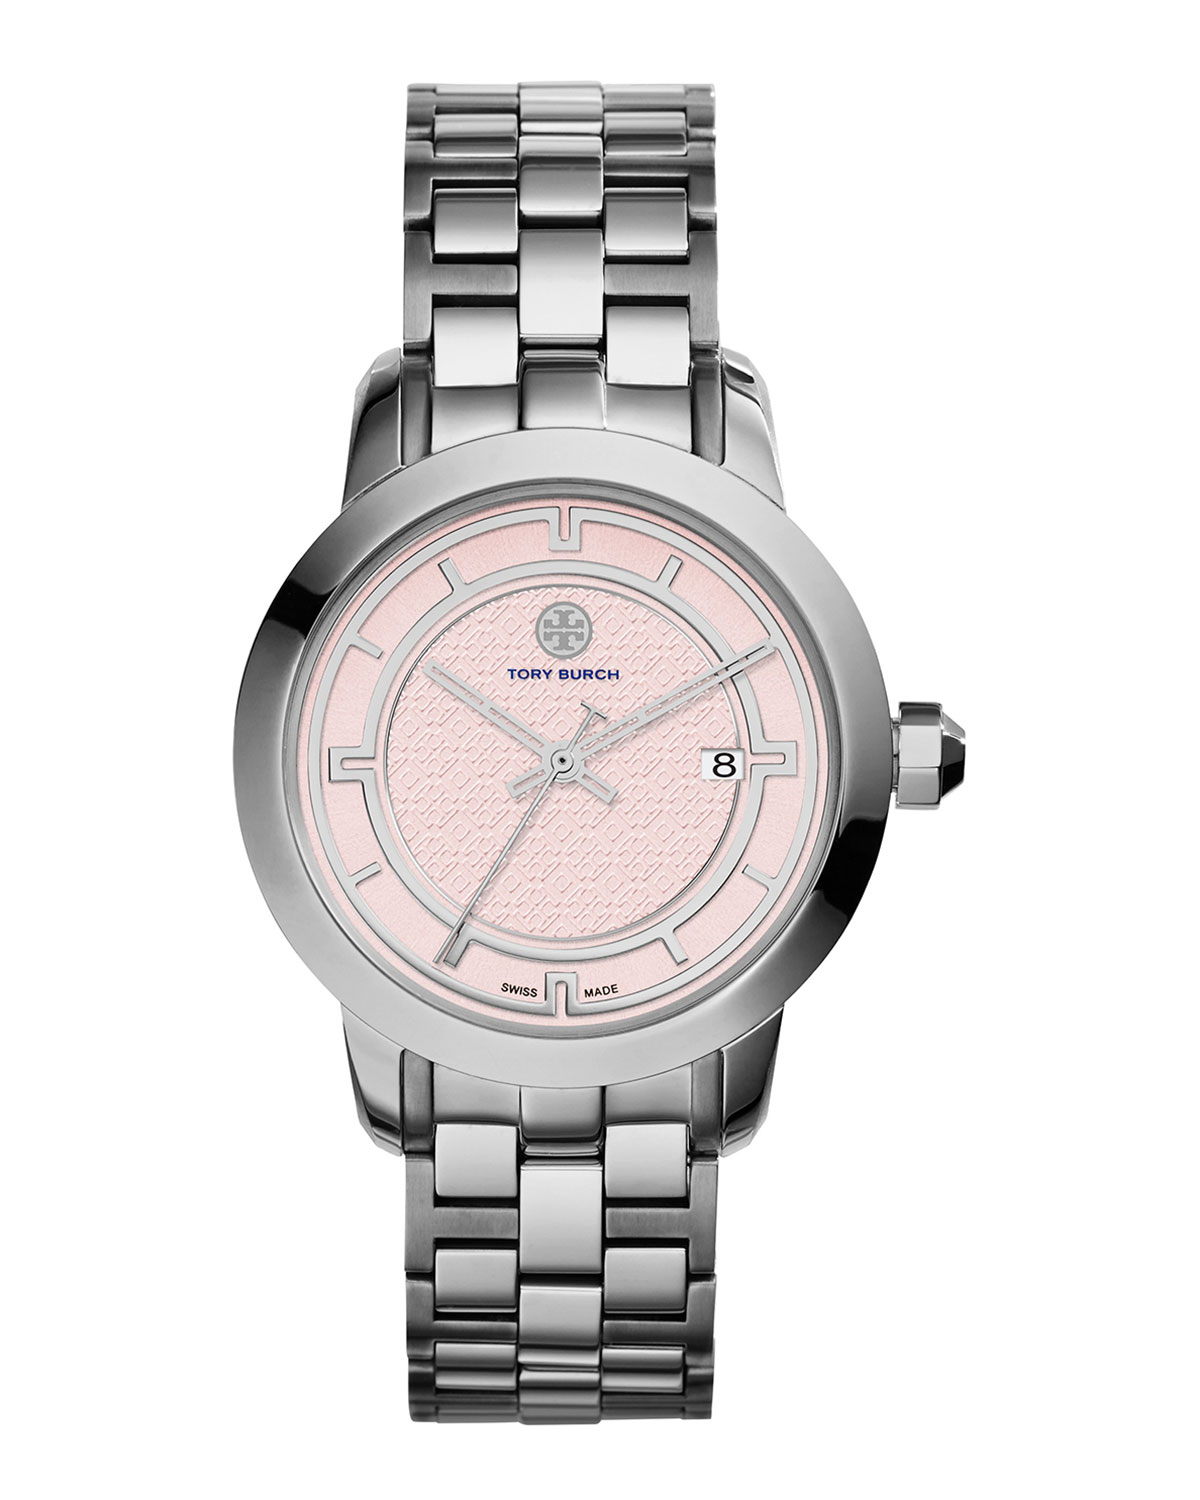 37mm Tory Stainless Steel Bracelet Watch, Light Pink/Silver - Tory Burch Watches